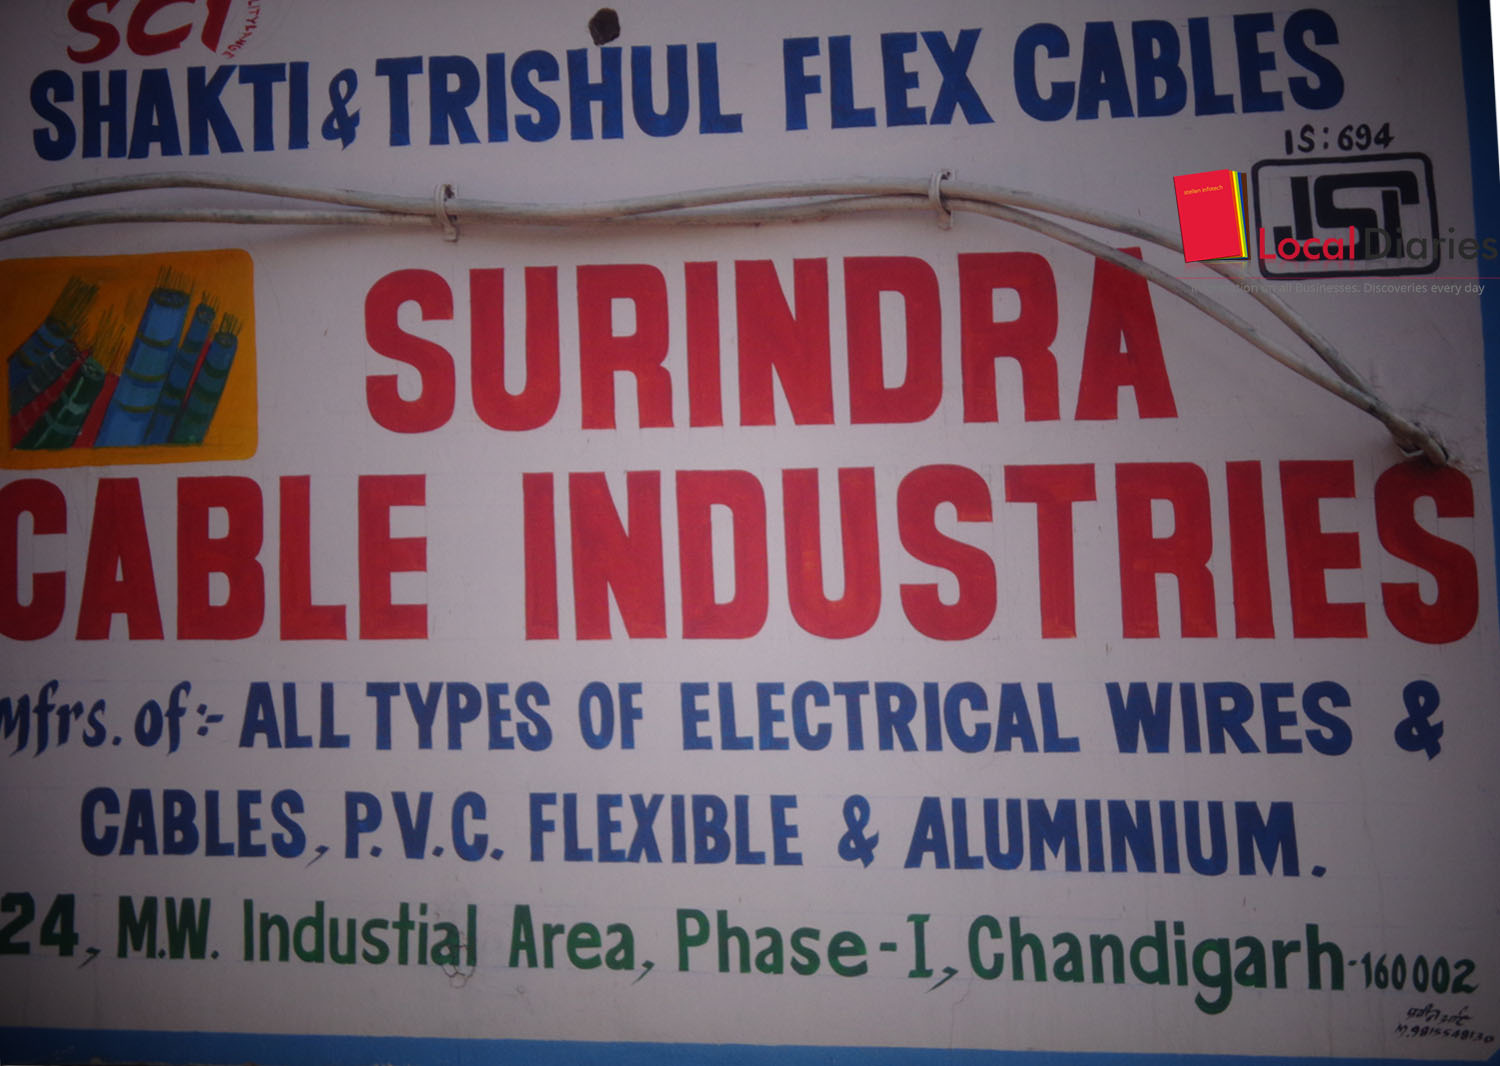 List Of Wire Manufacturers And Suppliers In Chandigarh Local Diaries Wiring Harness Delhi Surindera Cable Industries